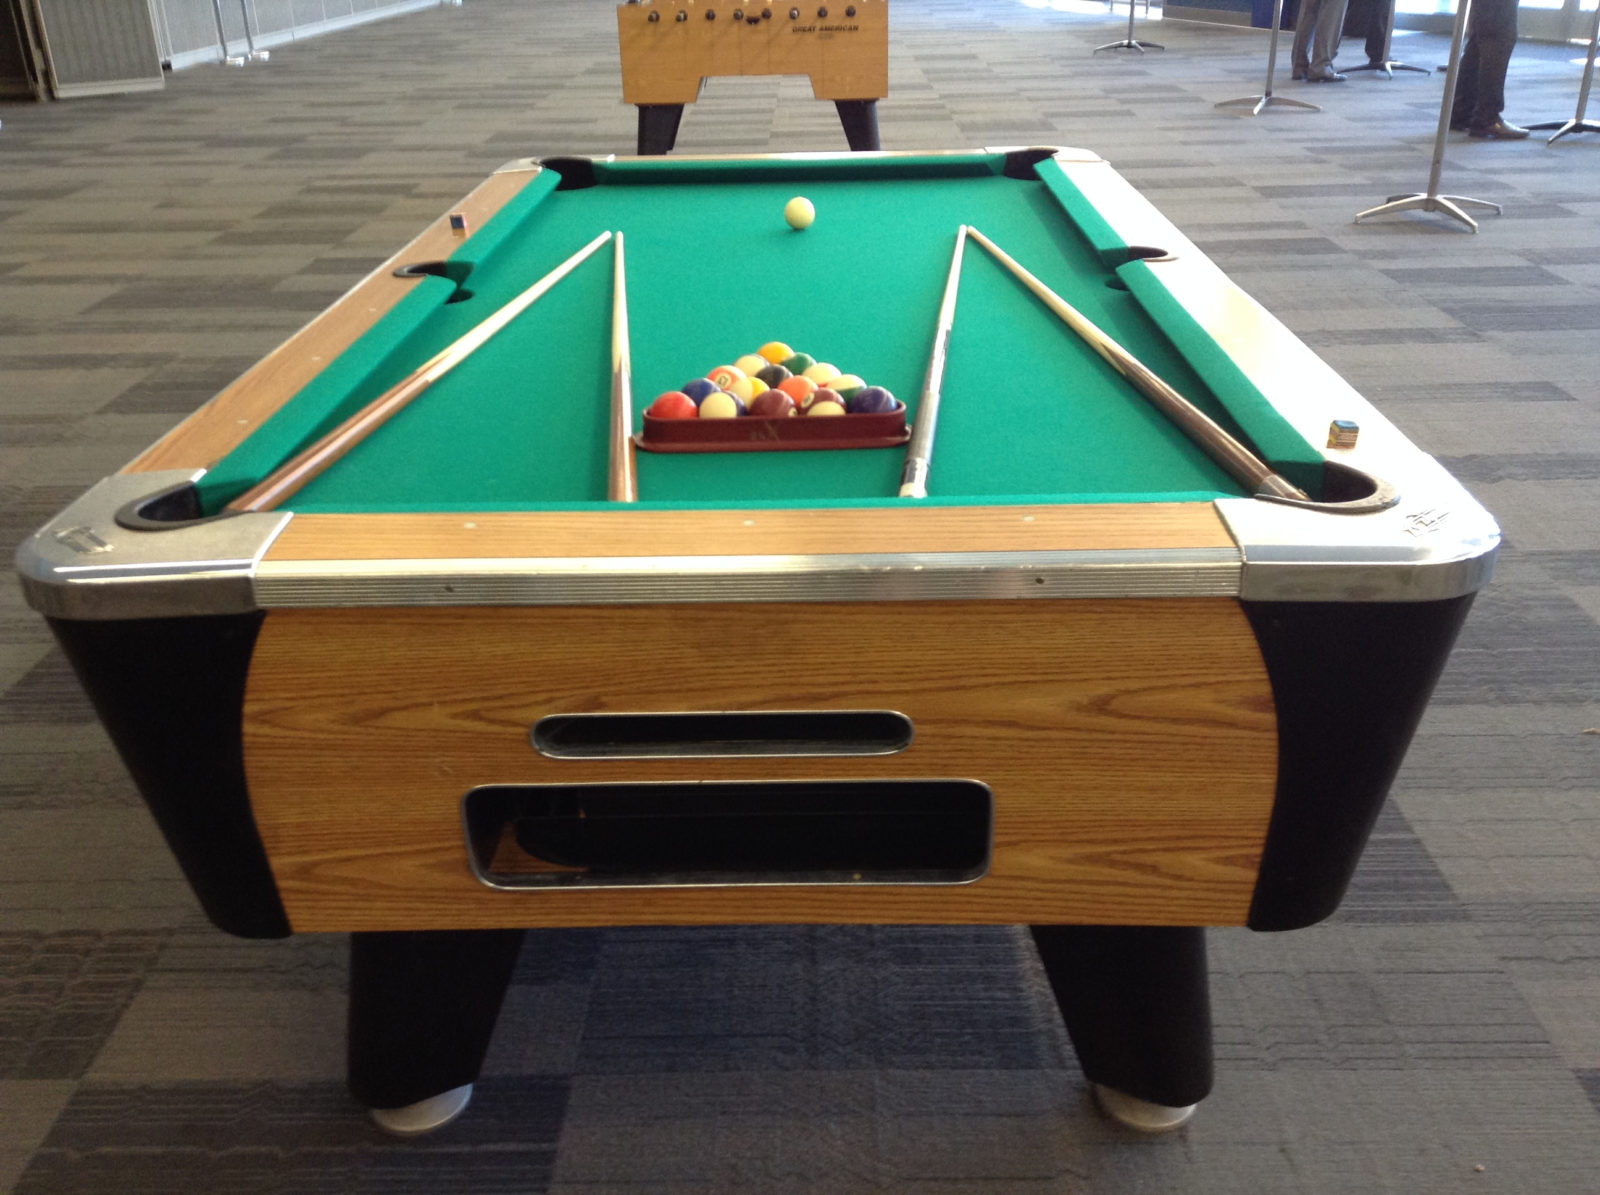 Pool Table Rental Over 21 Party Rentals San Francisco